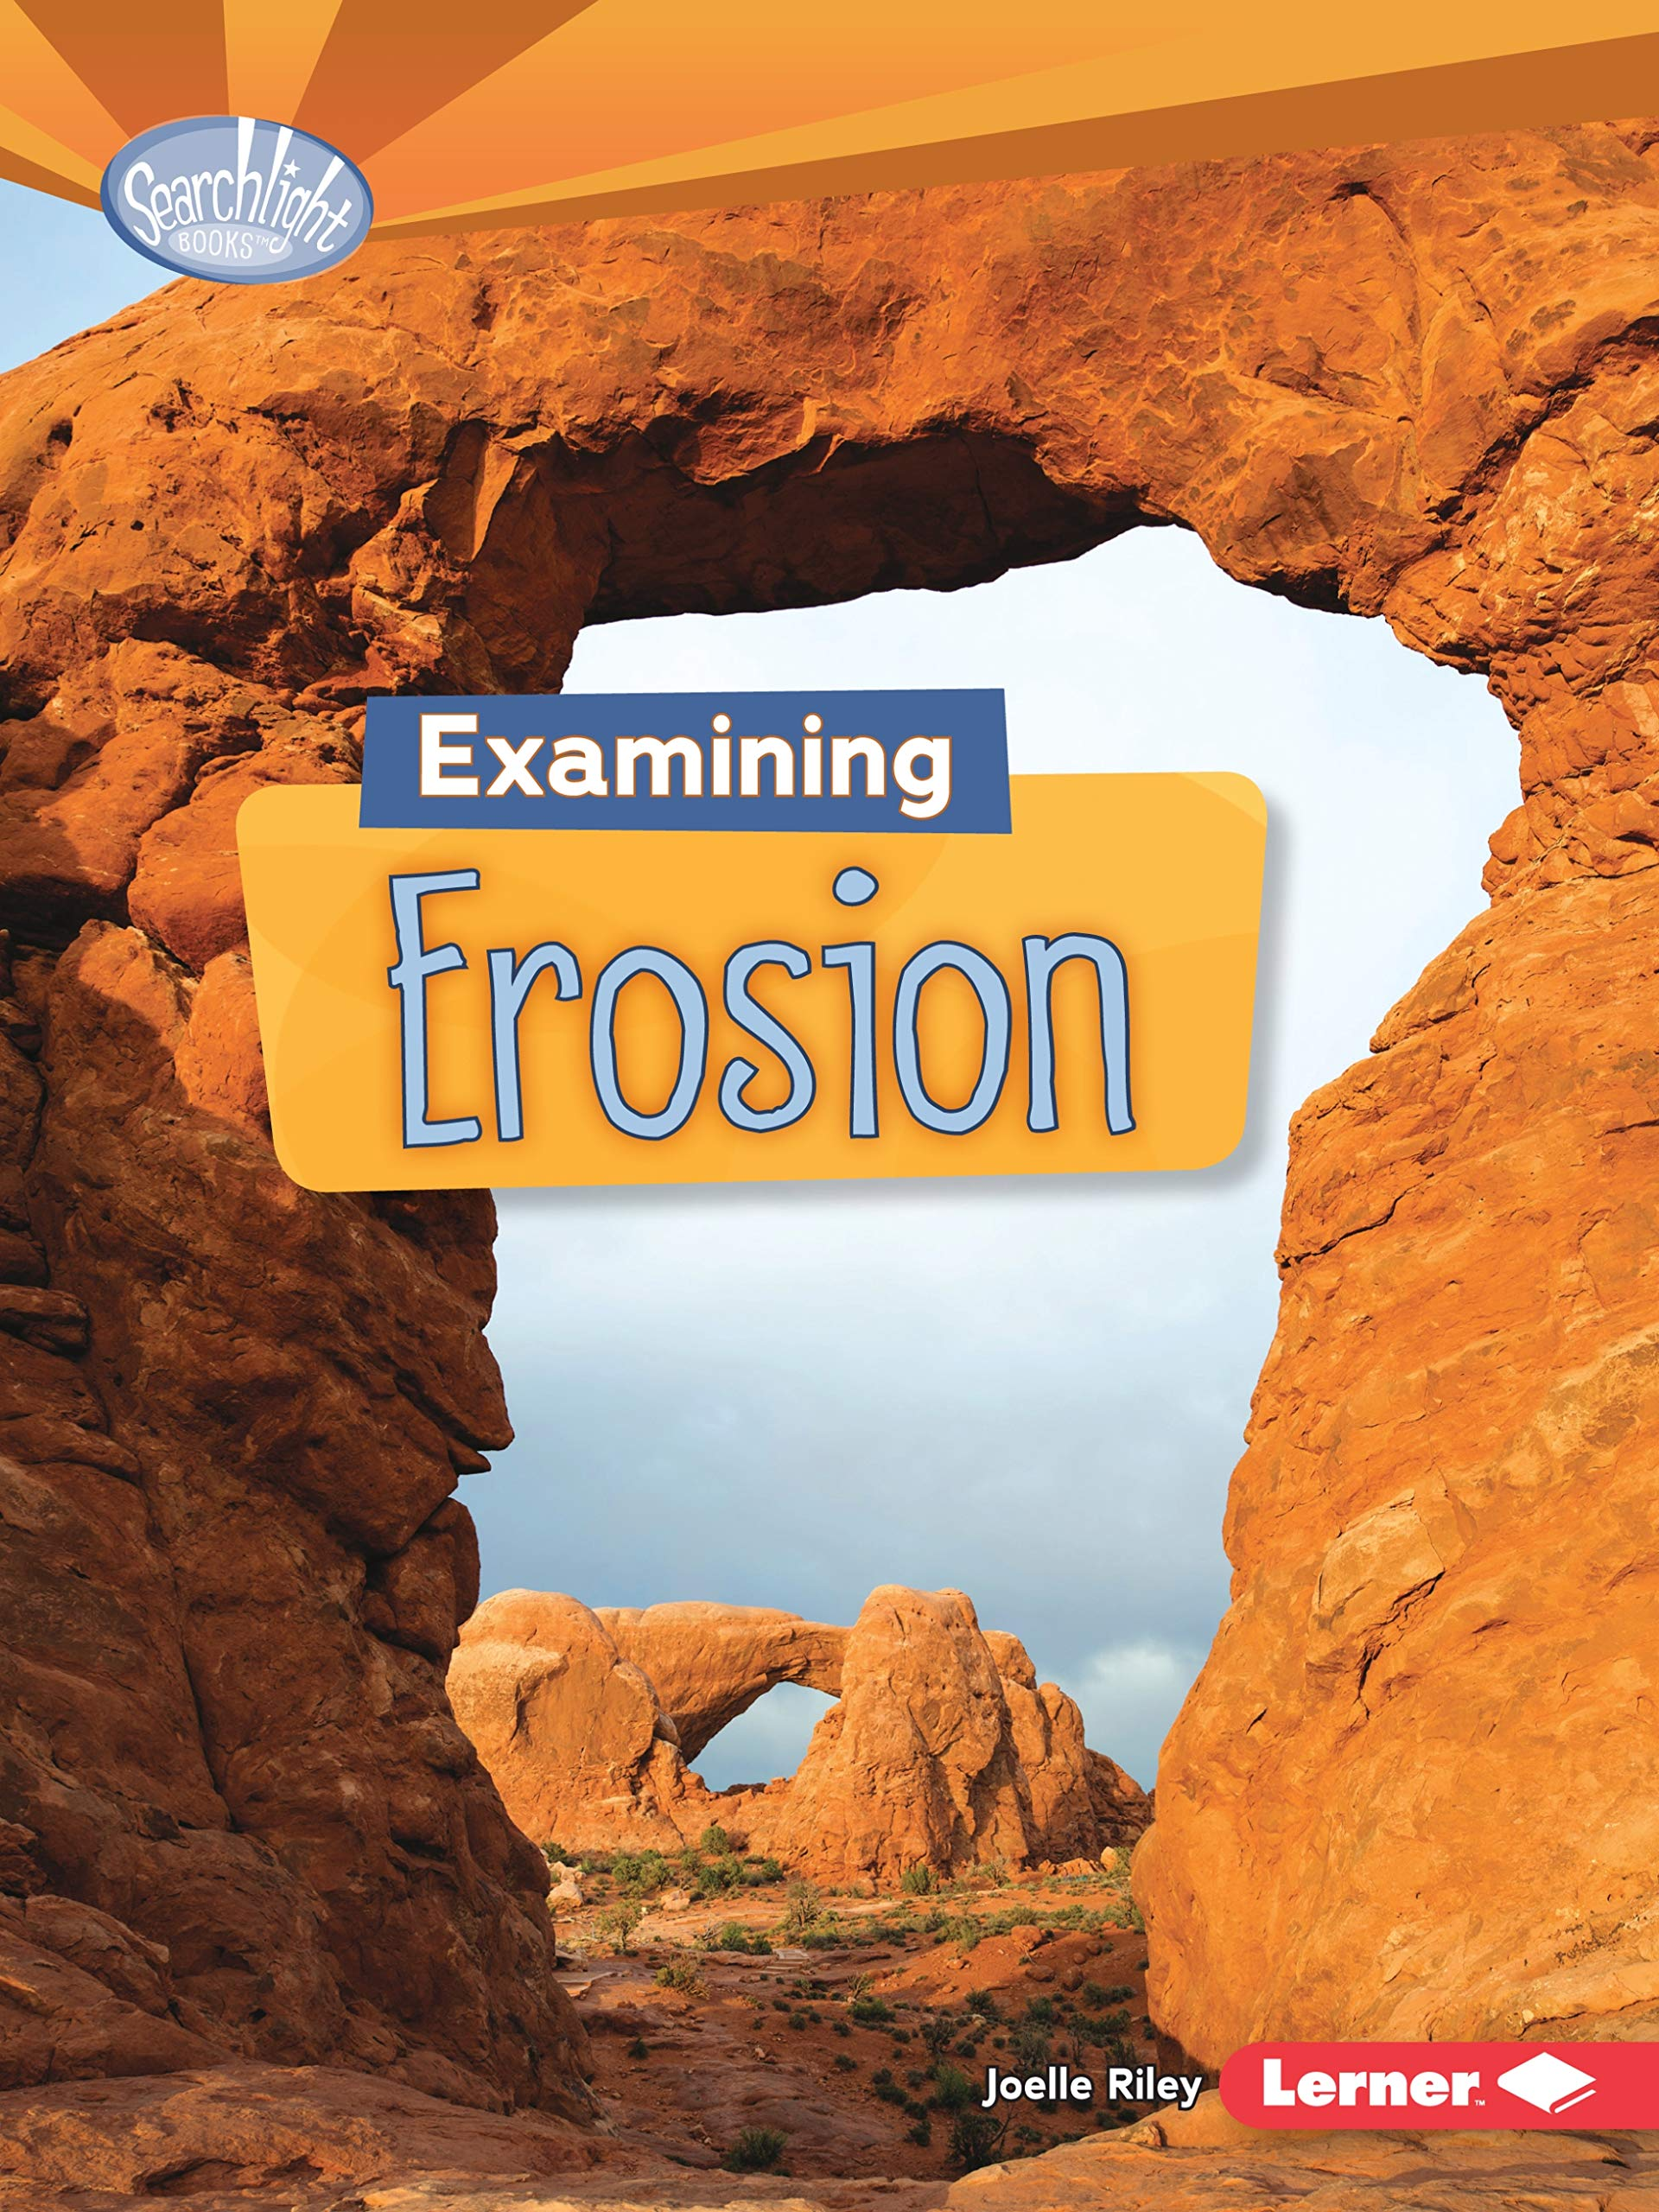 Download Examining Erosion (Searchlight Books) pdf